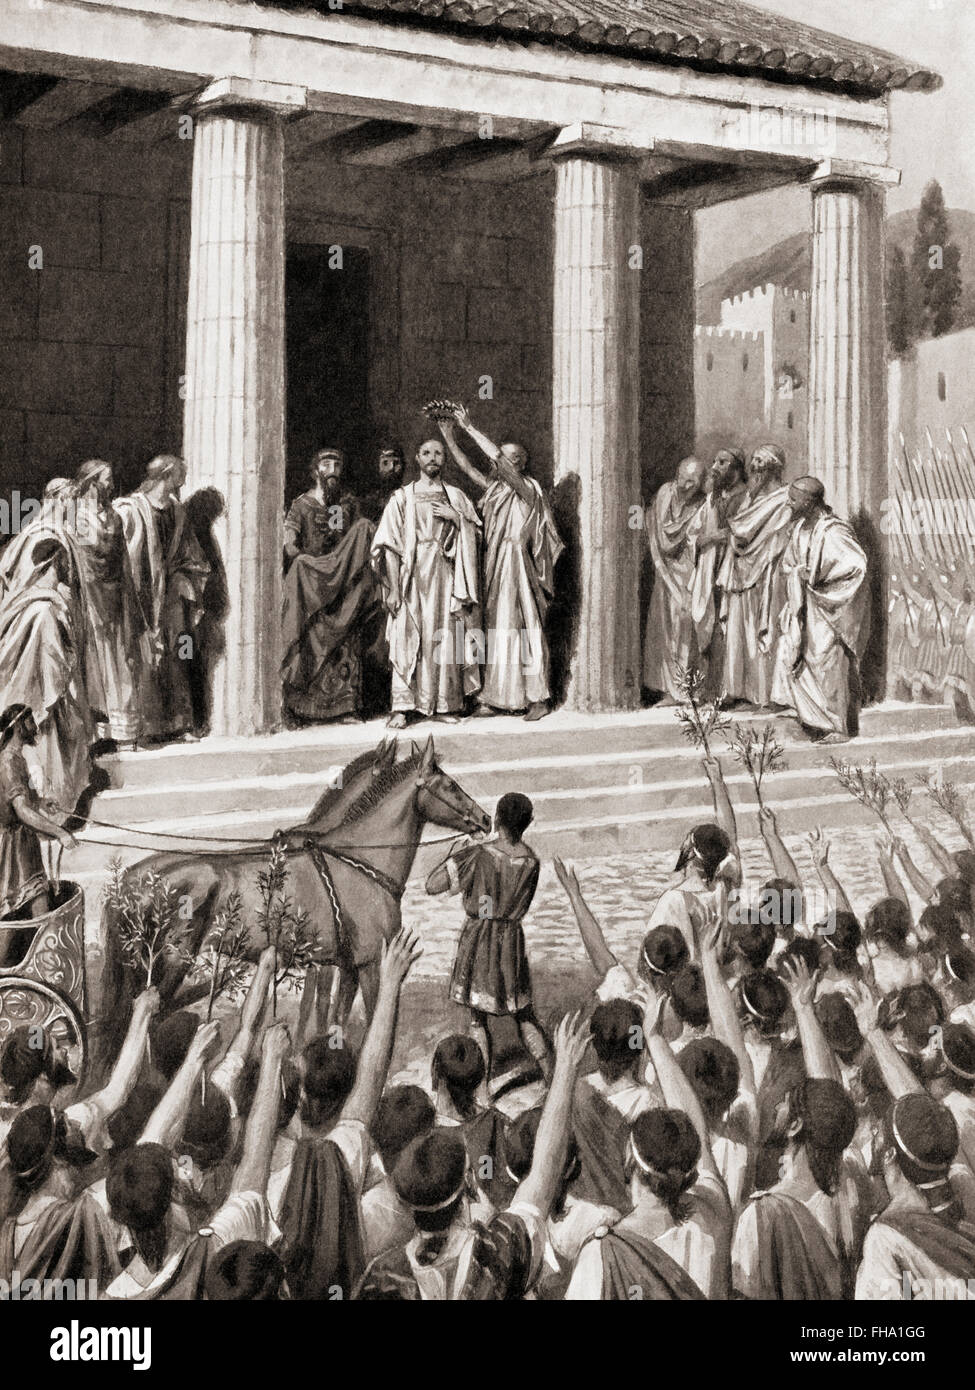 Themistocles is honoured at Sparta, 480 BC after the Greek victory over the Persians in the Straits of Salamis. - Stock Image